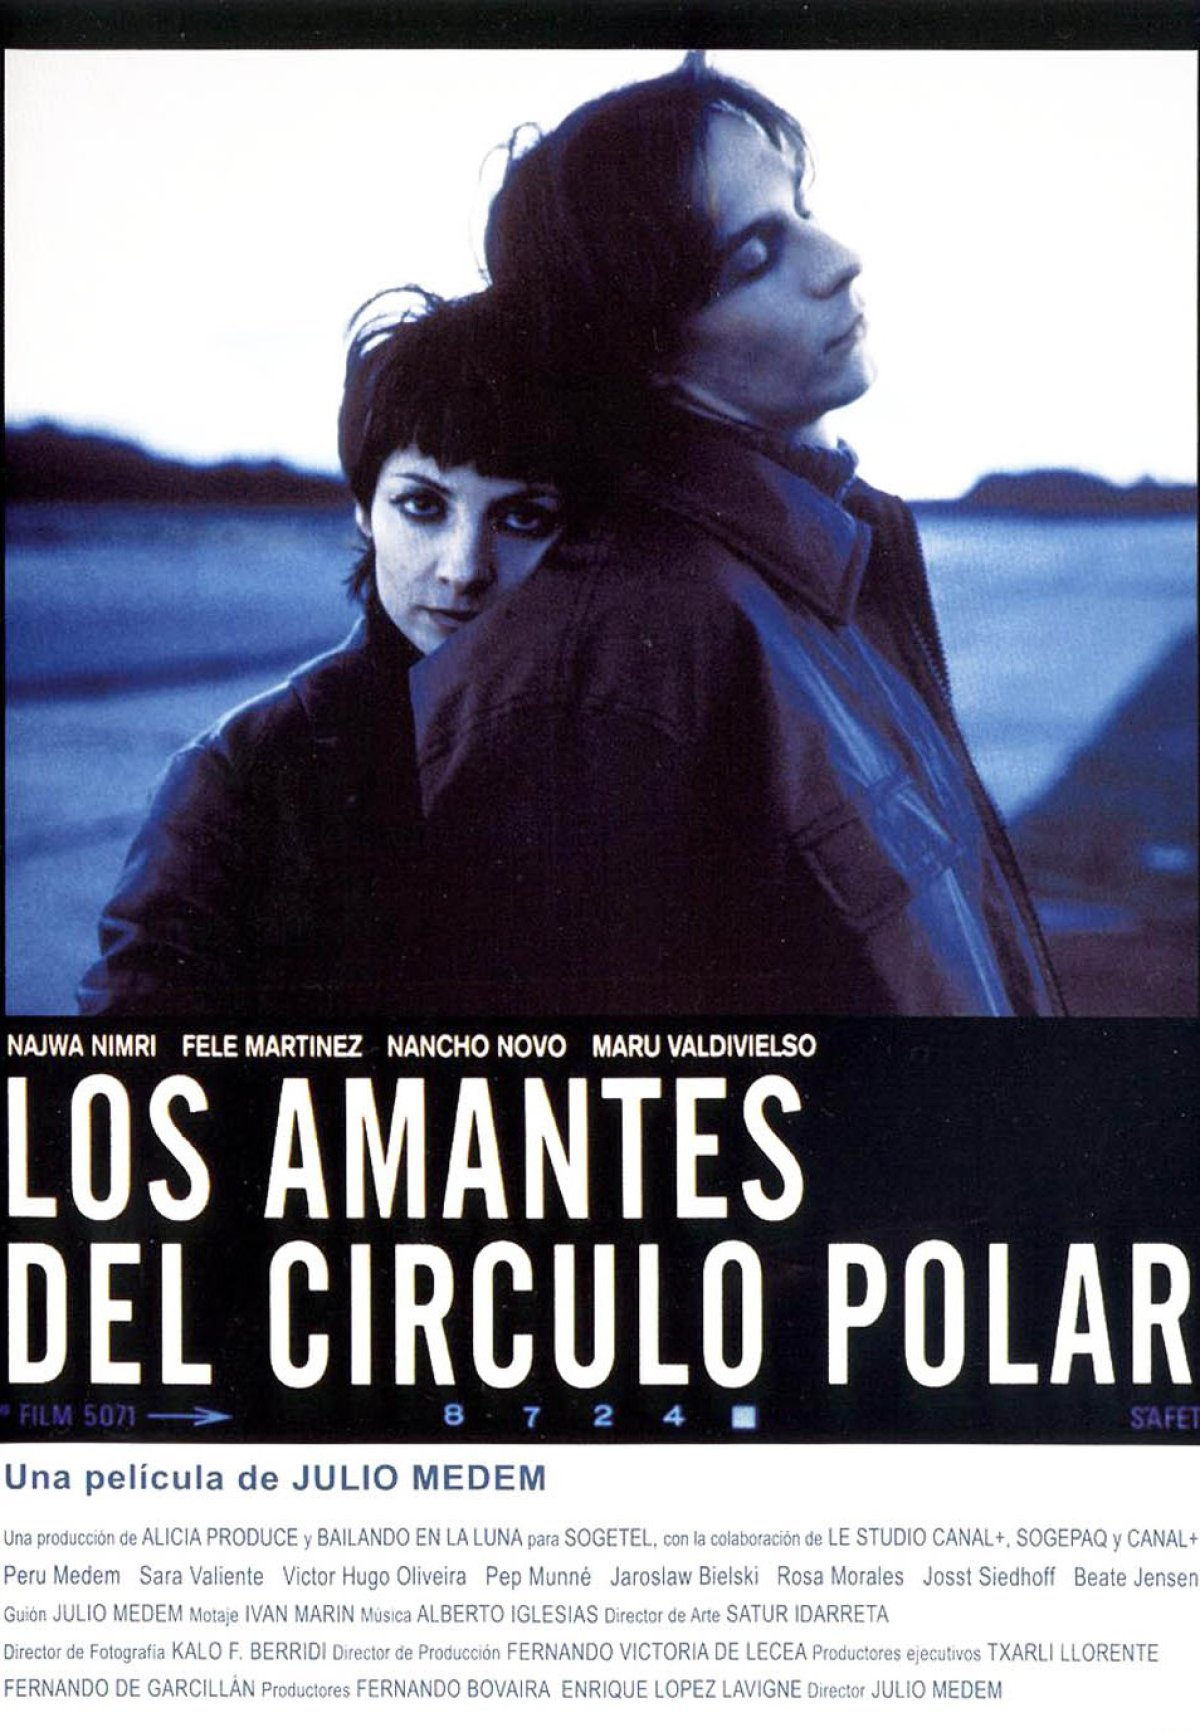 The Lovers of the Polar Circle (1998), Julio Medem